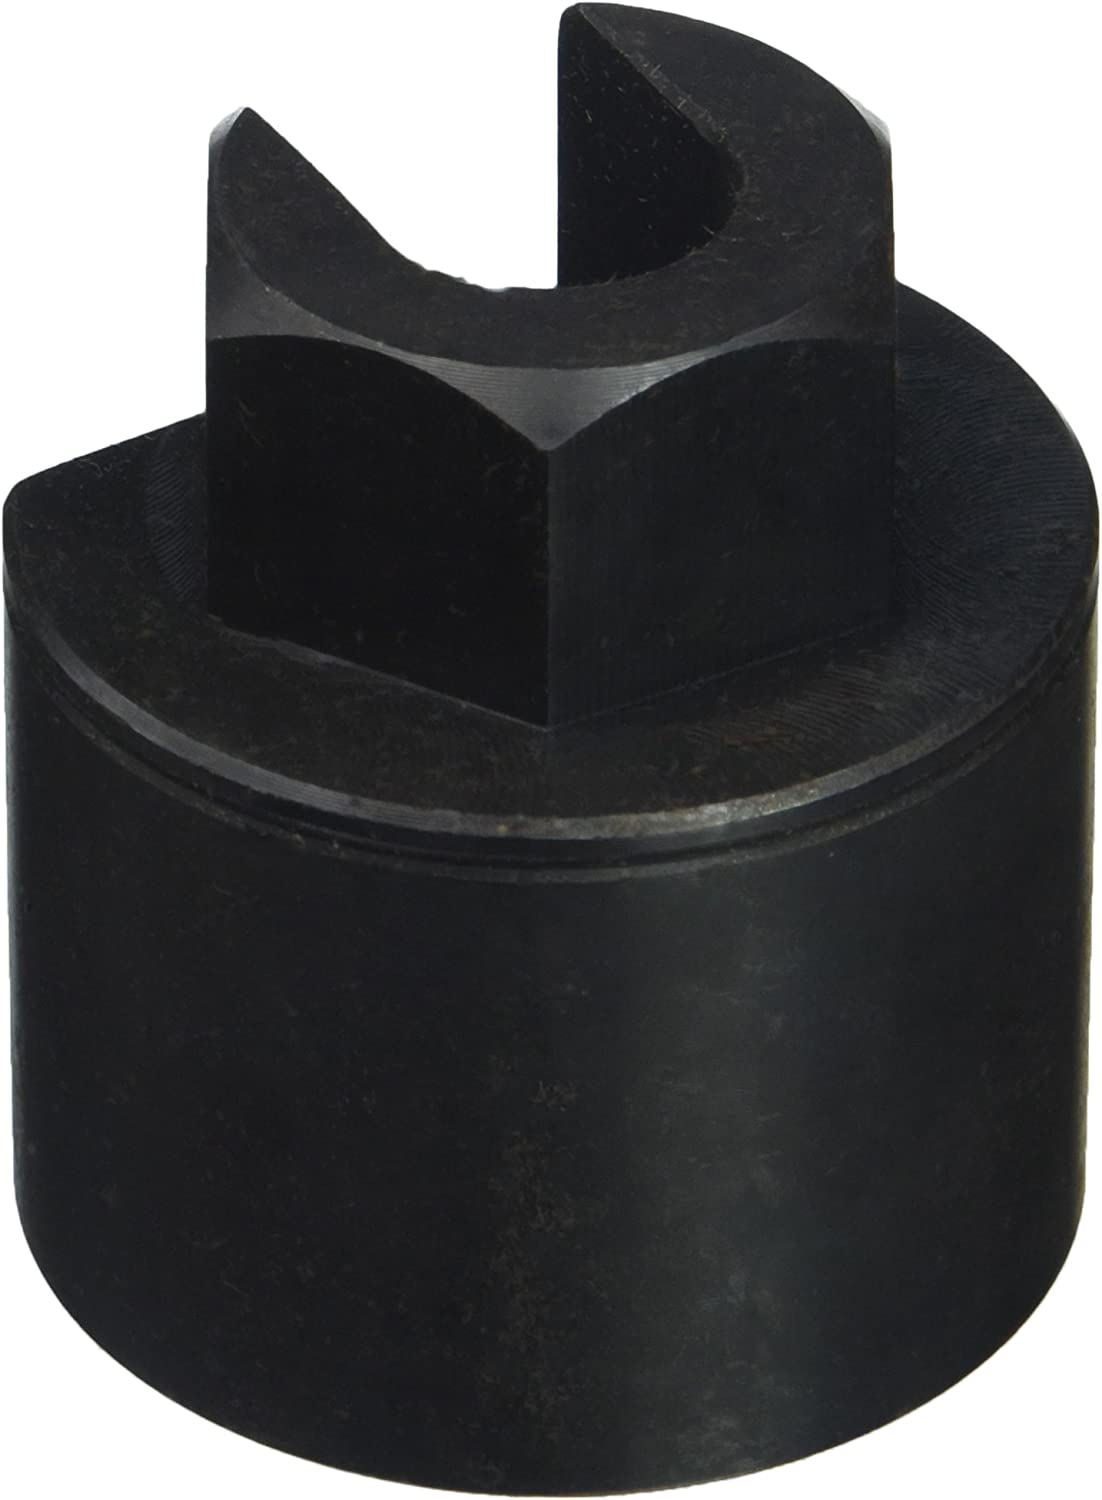 Specialty Products Company 89106 1-3//16 Tie Rod Wrench